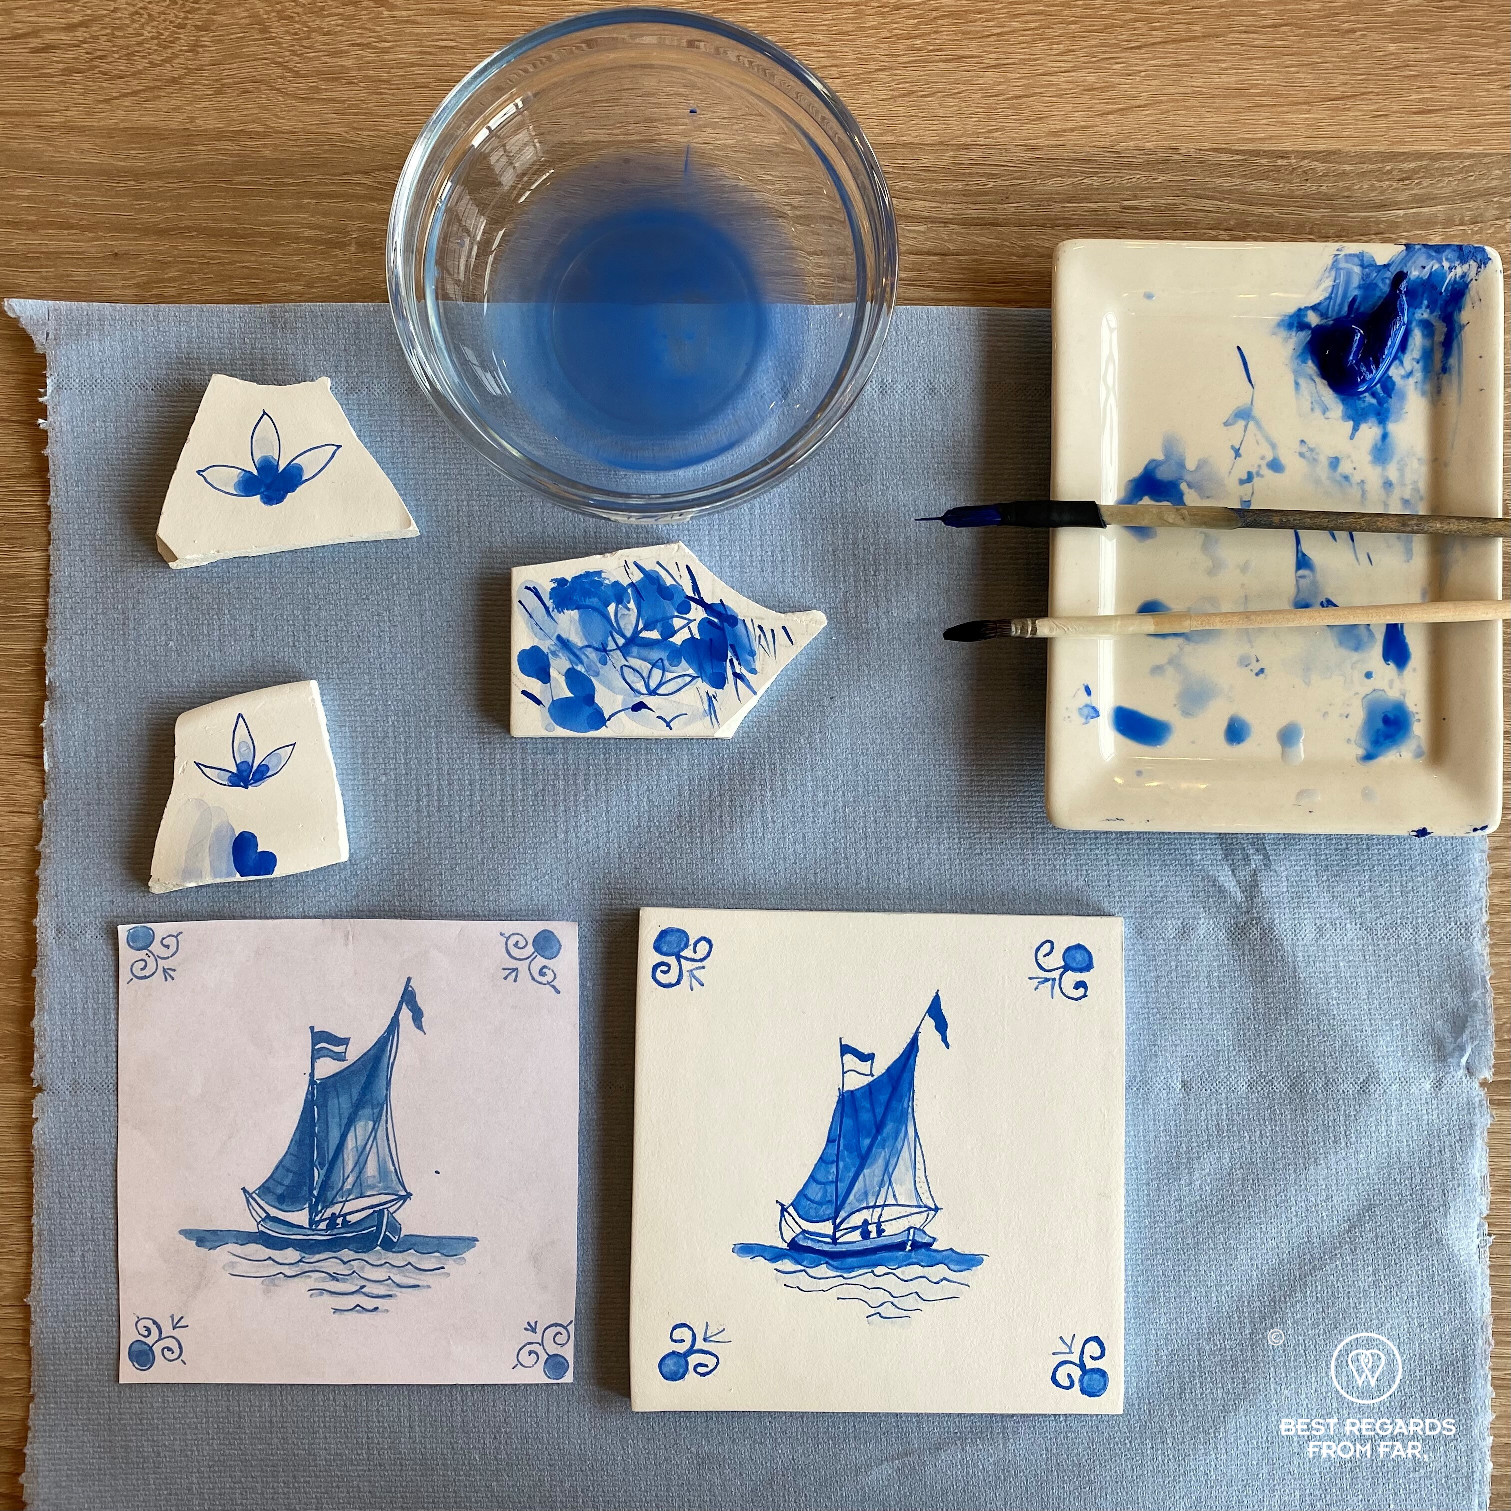 Sailboat reproduced by hand on a tile during a tile painting workshop at Royal Delft, the Netherlands